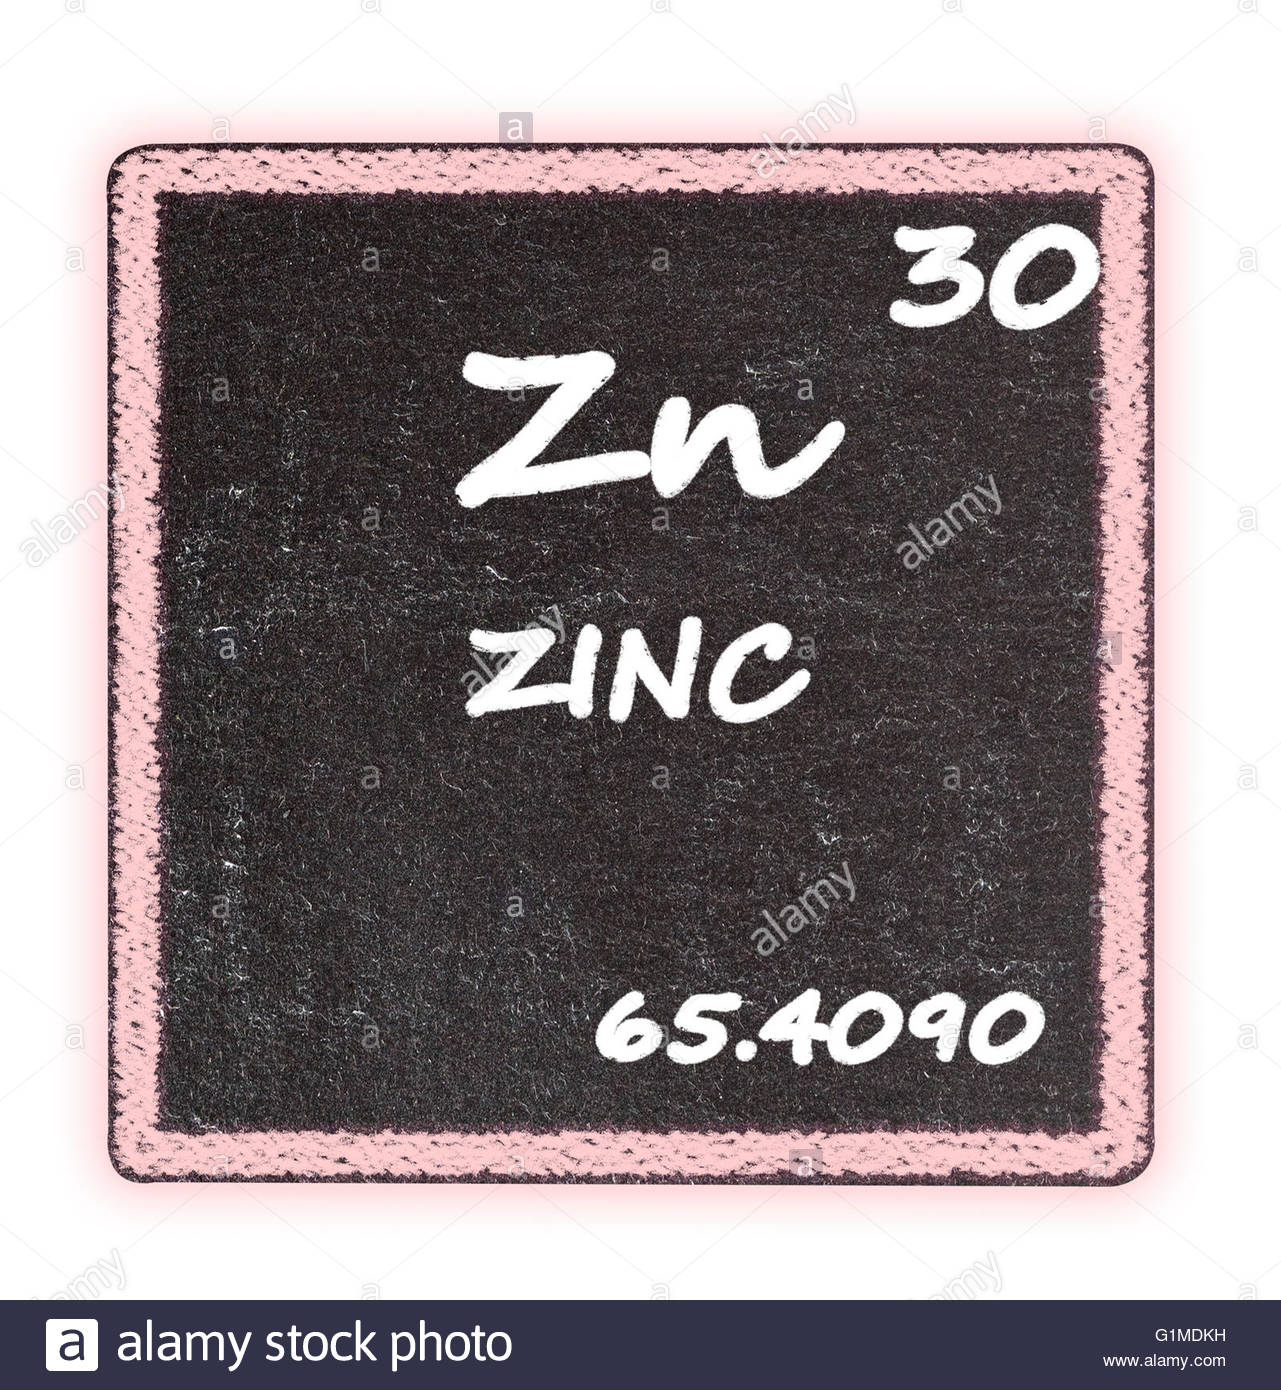 Zinc details from the periodic table stock photo royalty free stock photo zinc details from the periodic table gamestrikefo Gallery